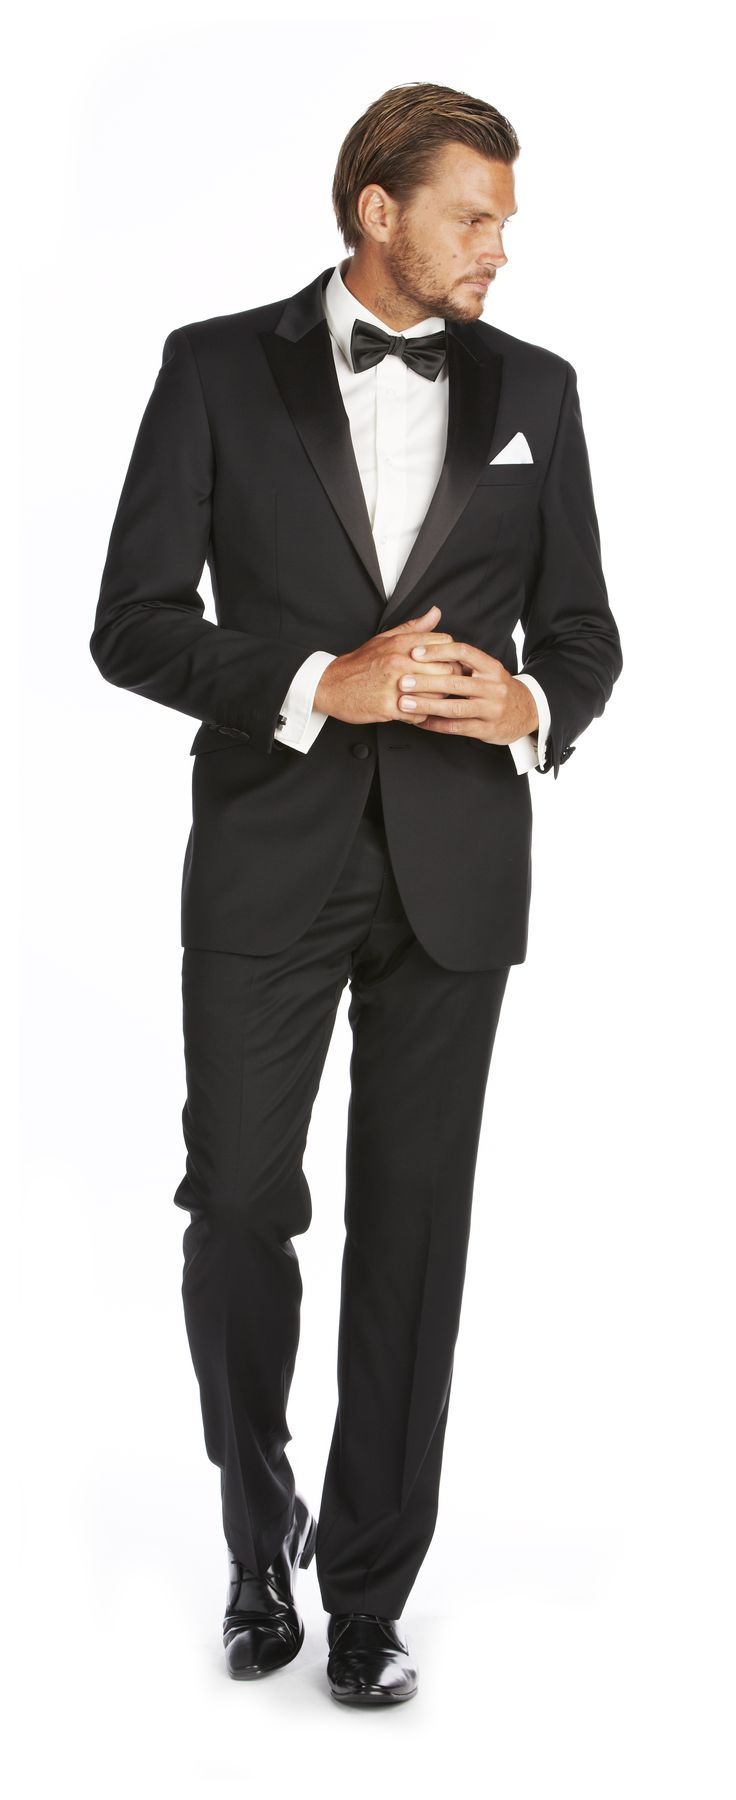 'The Tuxedo' Two buttoned jacket with a satin peak lapel, angled pocket flaps with satin jet trim, with side vents.